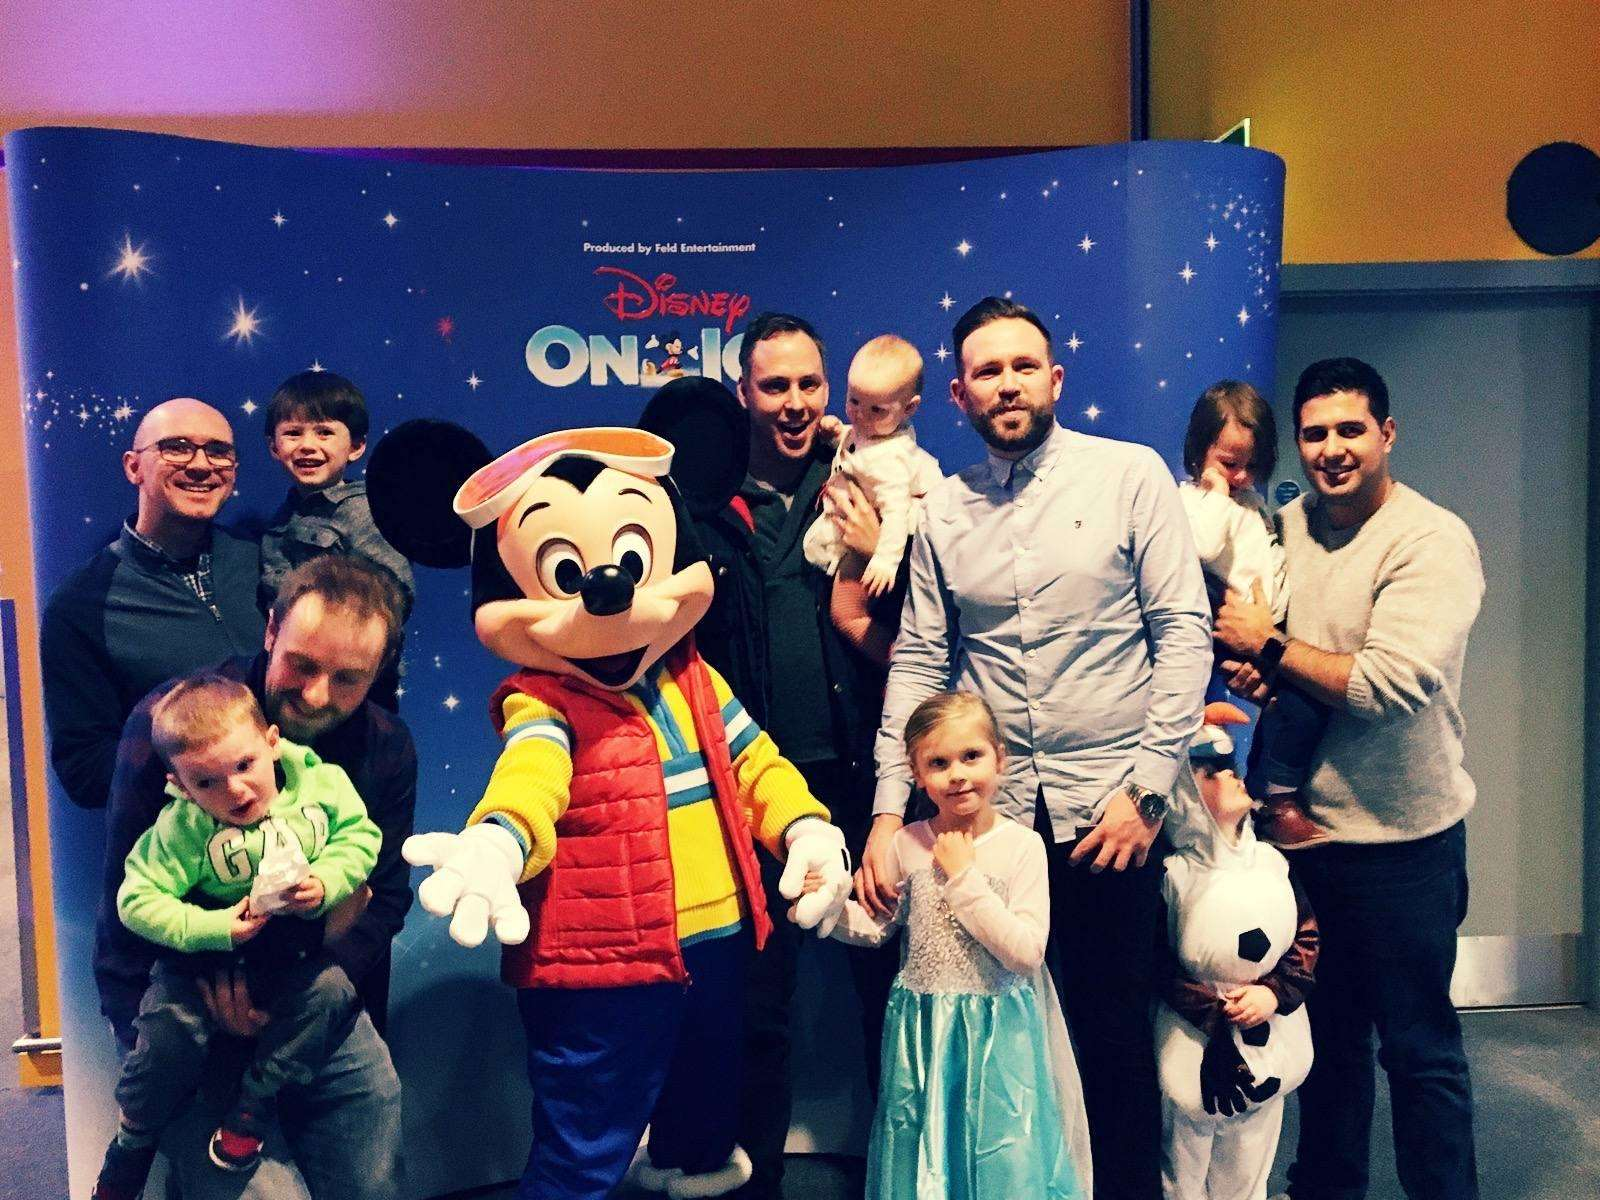 Disney on Ice Presents Frozen Hosts The Dad Network, IMG 9679 1%, new-dad%